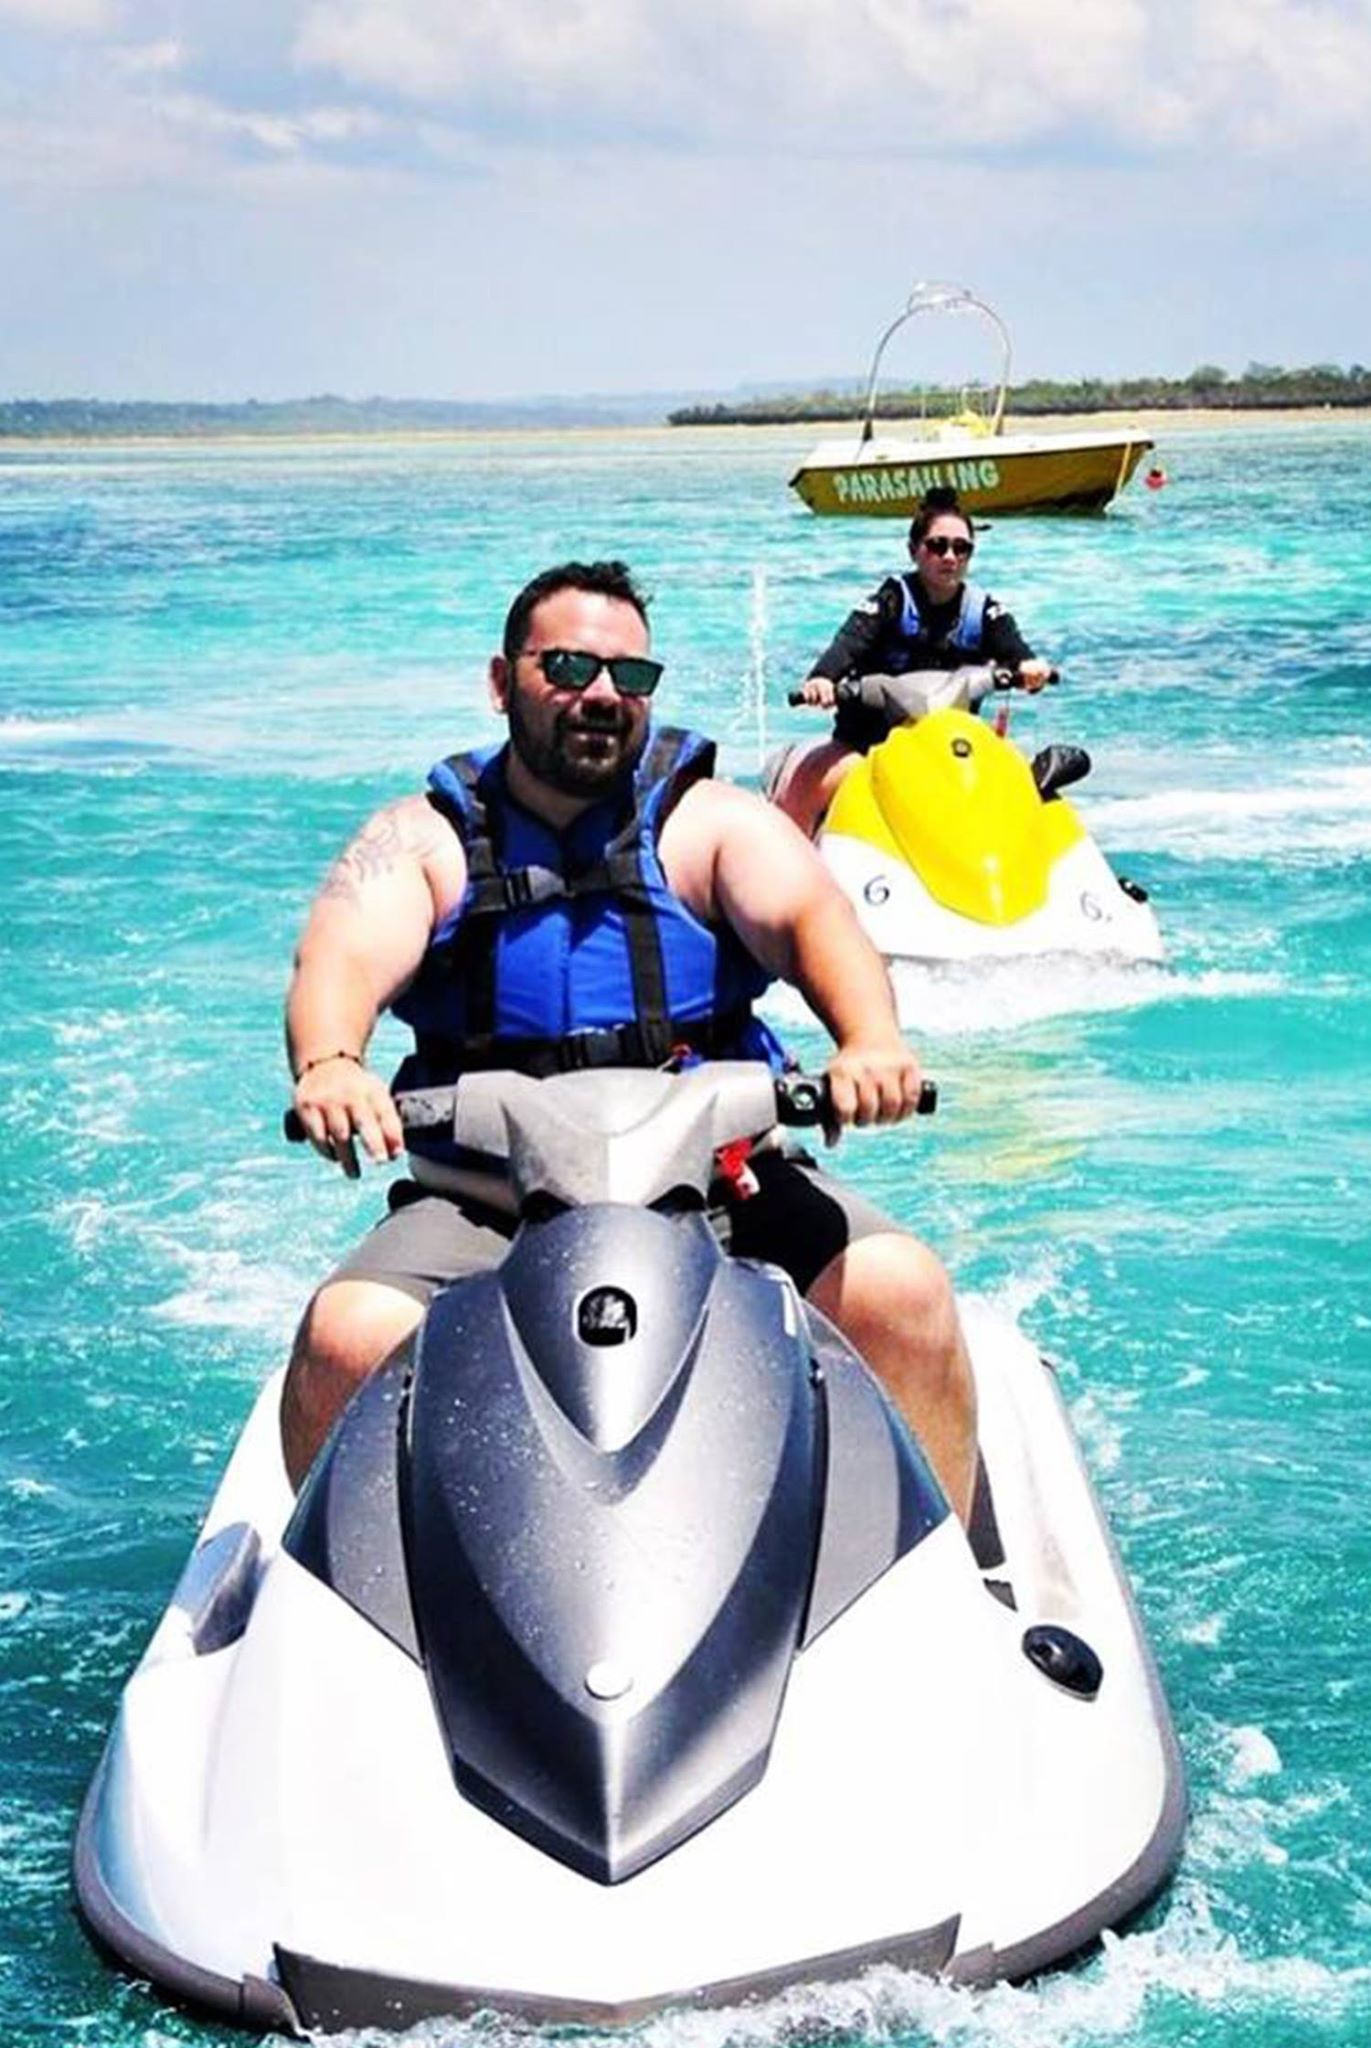 JETSKI TOURS AND RENTAL IN ZANZIBAR